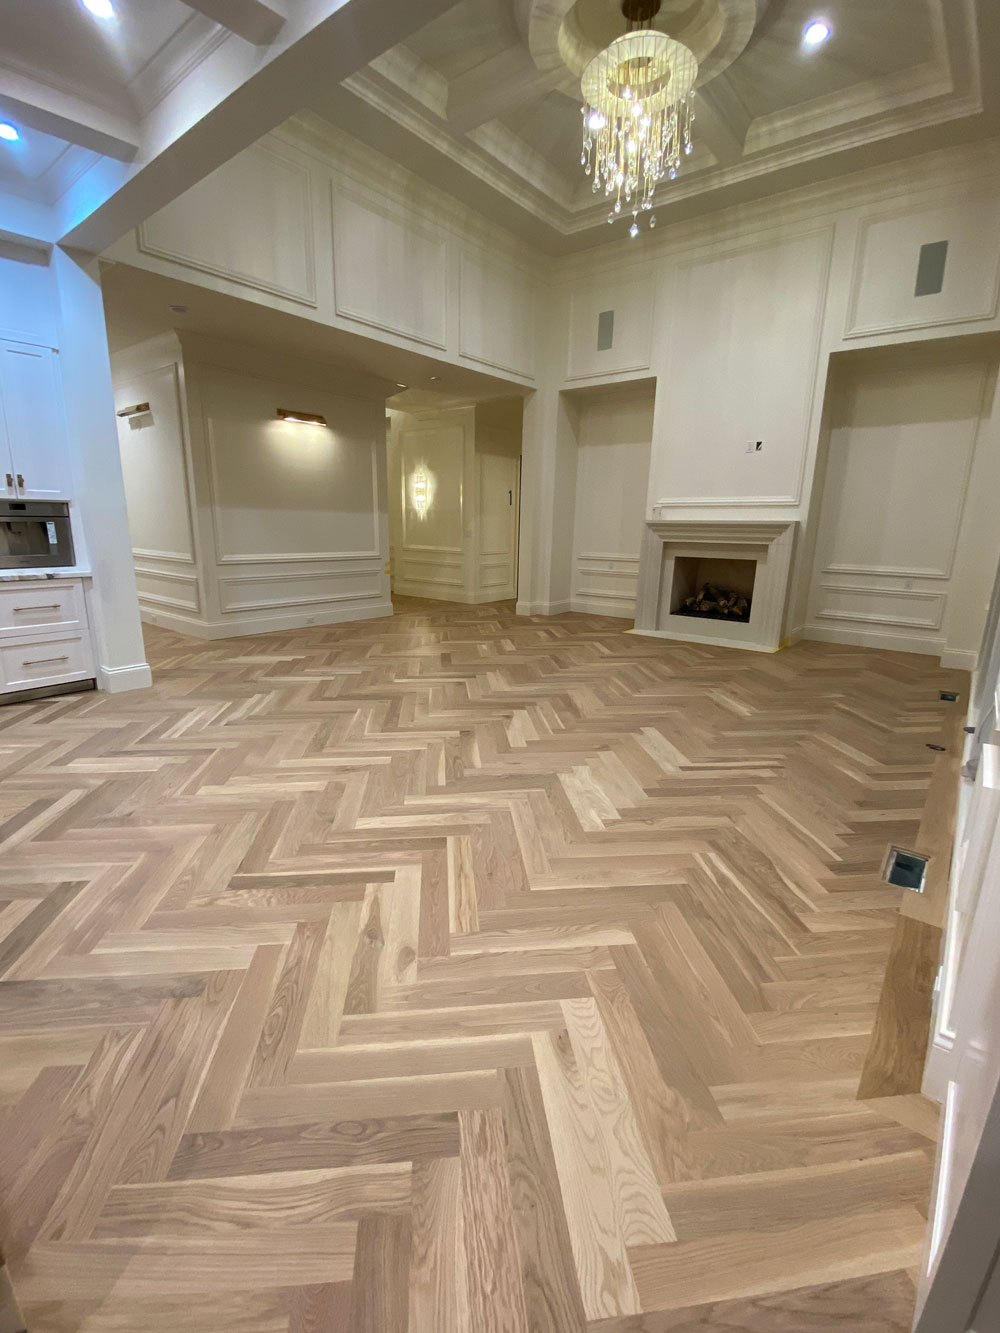 Beautiful hard wood floor install in a large house.